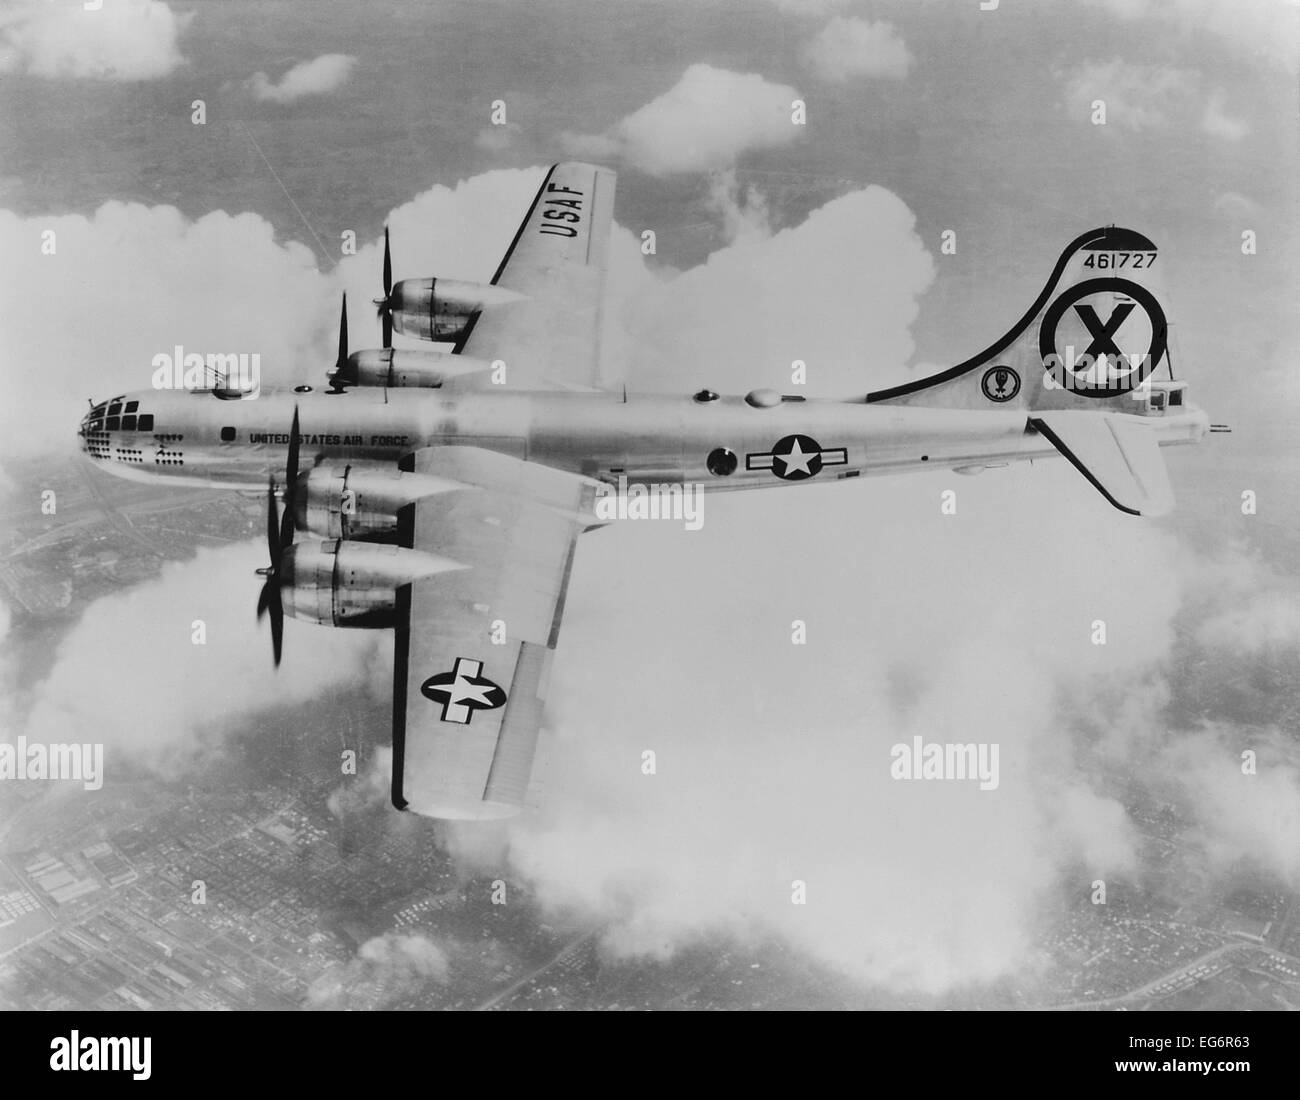 RB-29 of the 31st Reconnaissance Squadron, somewhere over Korea. The reconnaissance version of the Superfortress - Stock Image